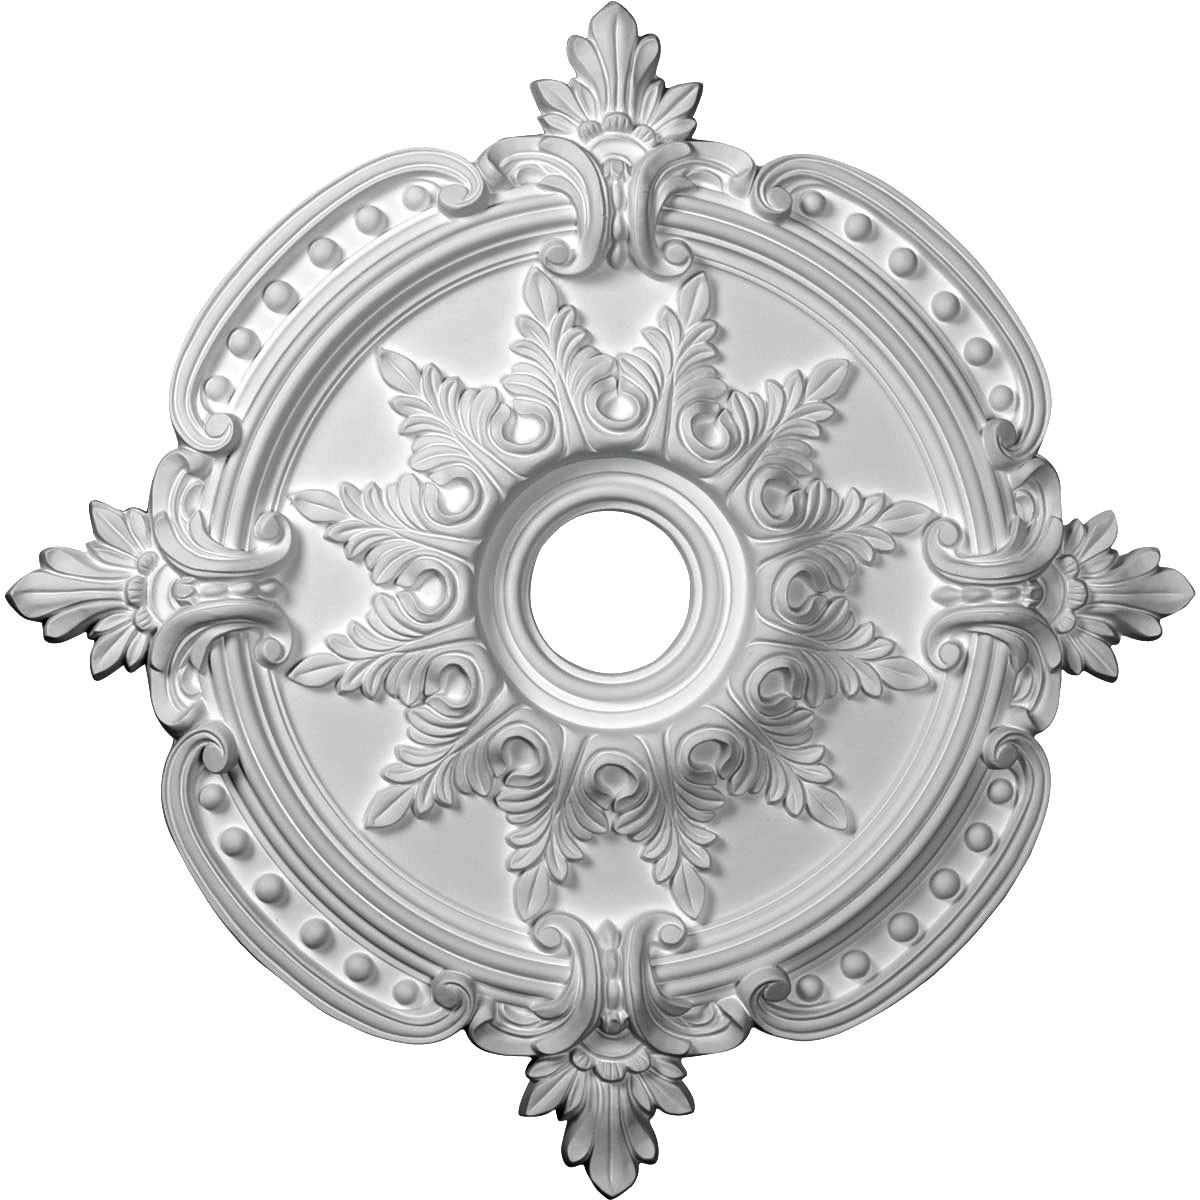 """EM-CM28BE - 28 3/8""""OD x 4 1/2""""ID x 1 5/8""""P Benson Classic Ceiling Medallion (Fits Canopies up to 6 1/2"""")"""